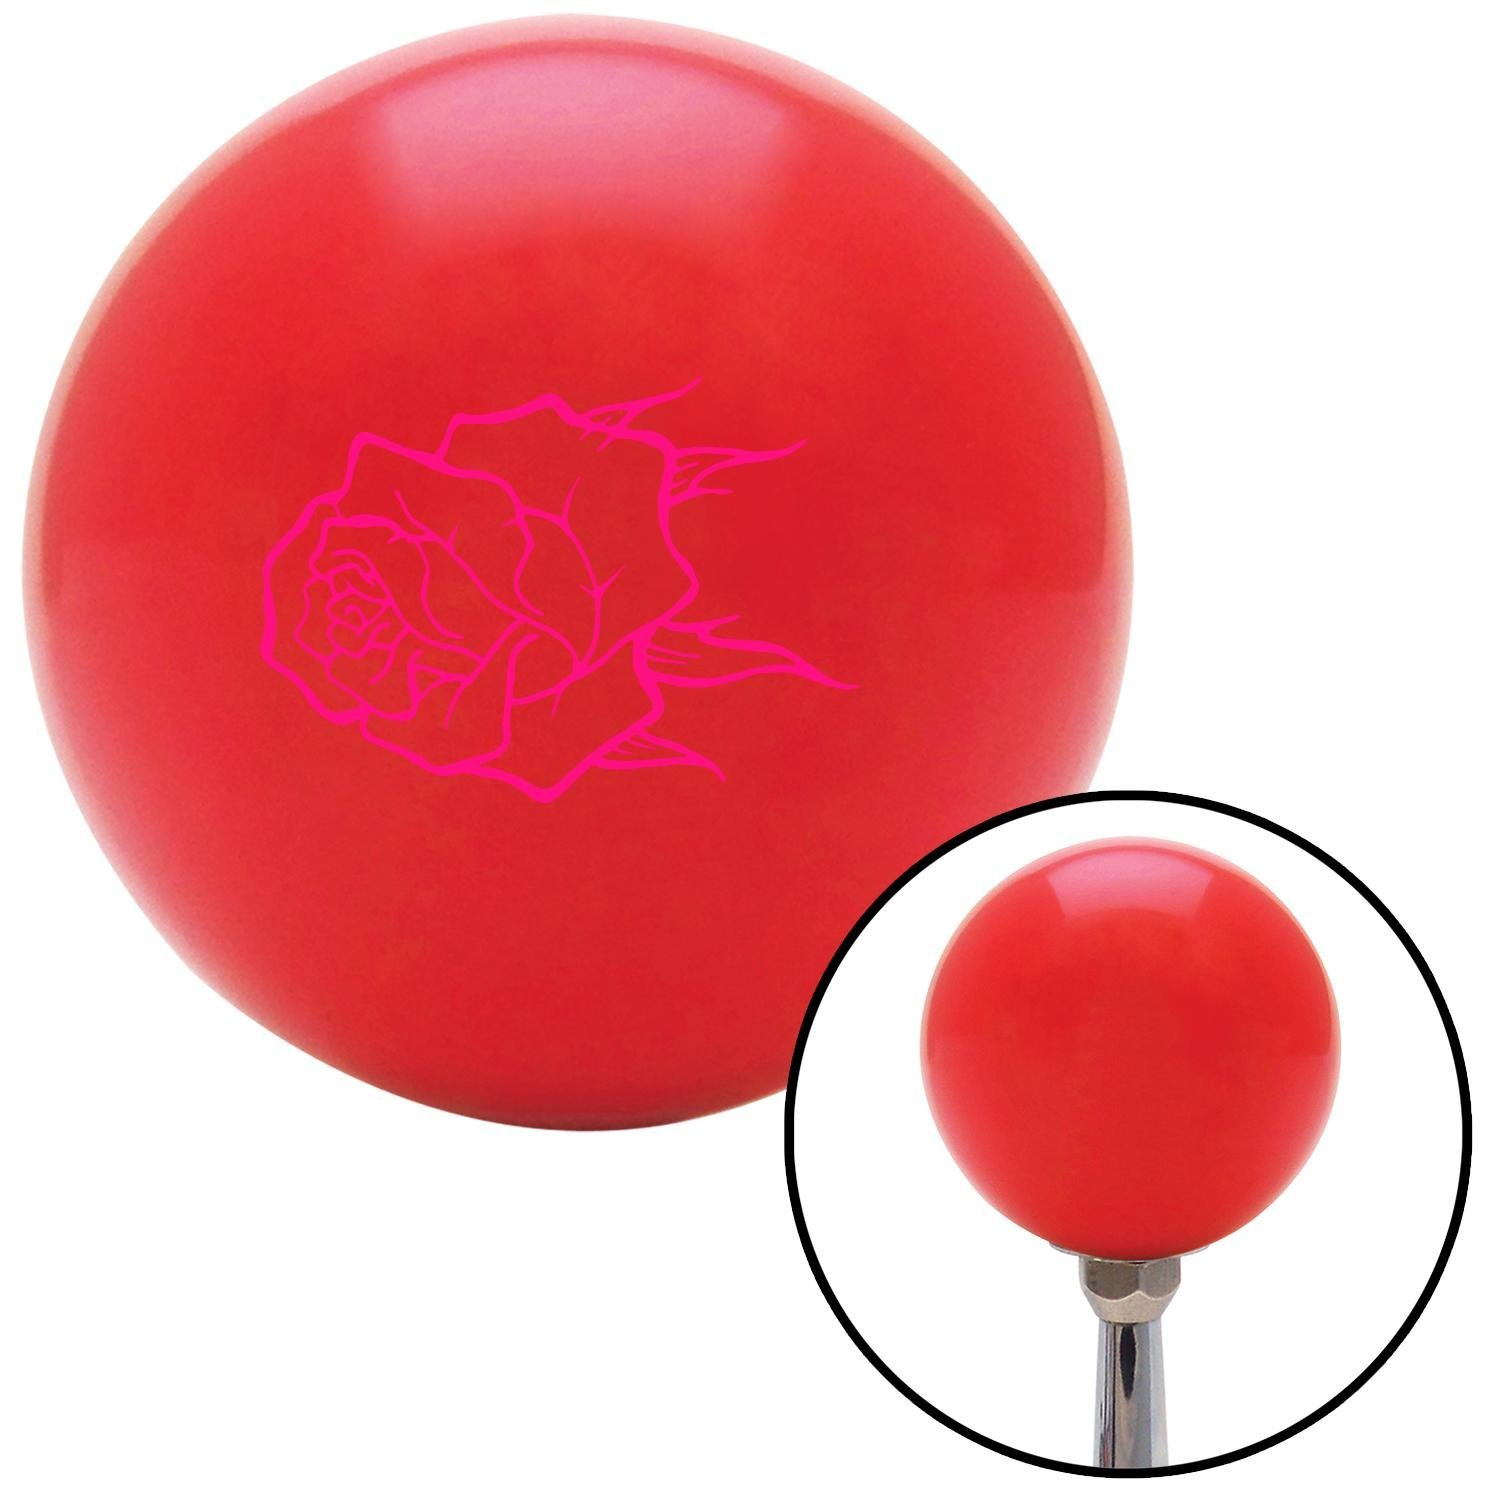 Pink Rose w//no Stem American Shifter 98834 Red Shift Knob with M16 x 1.5 Insert